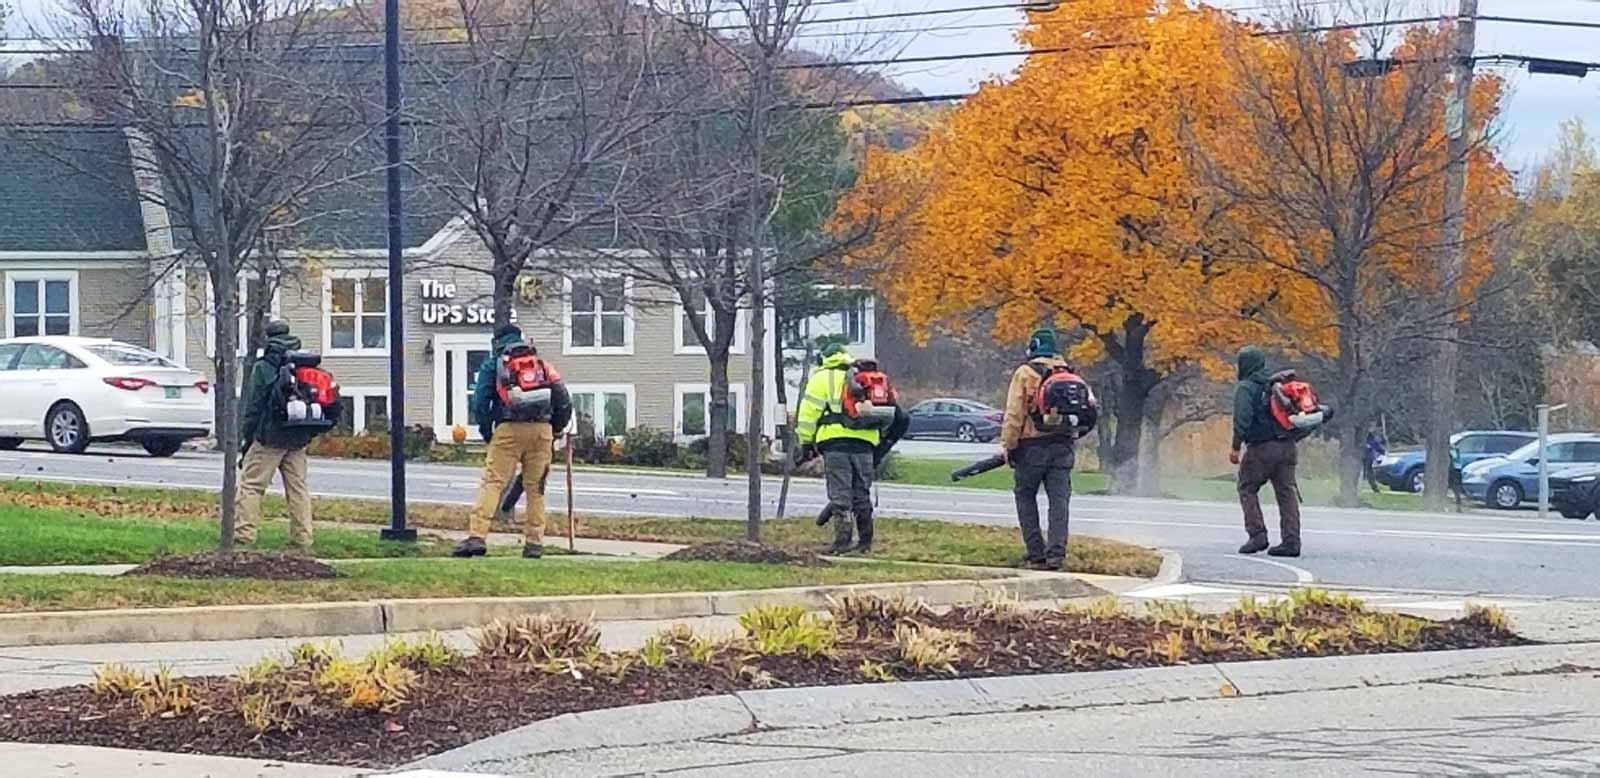 men running leaf blowers